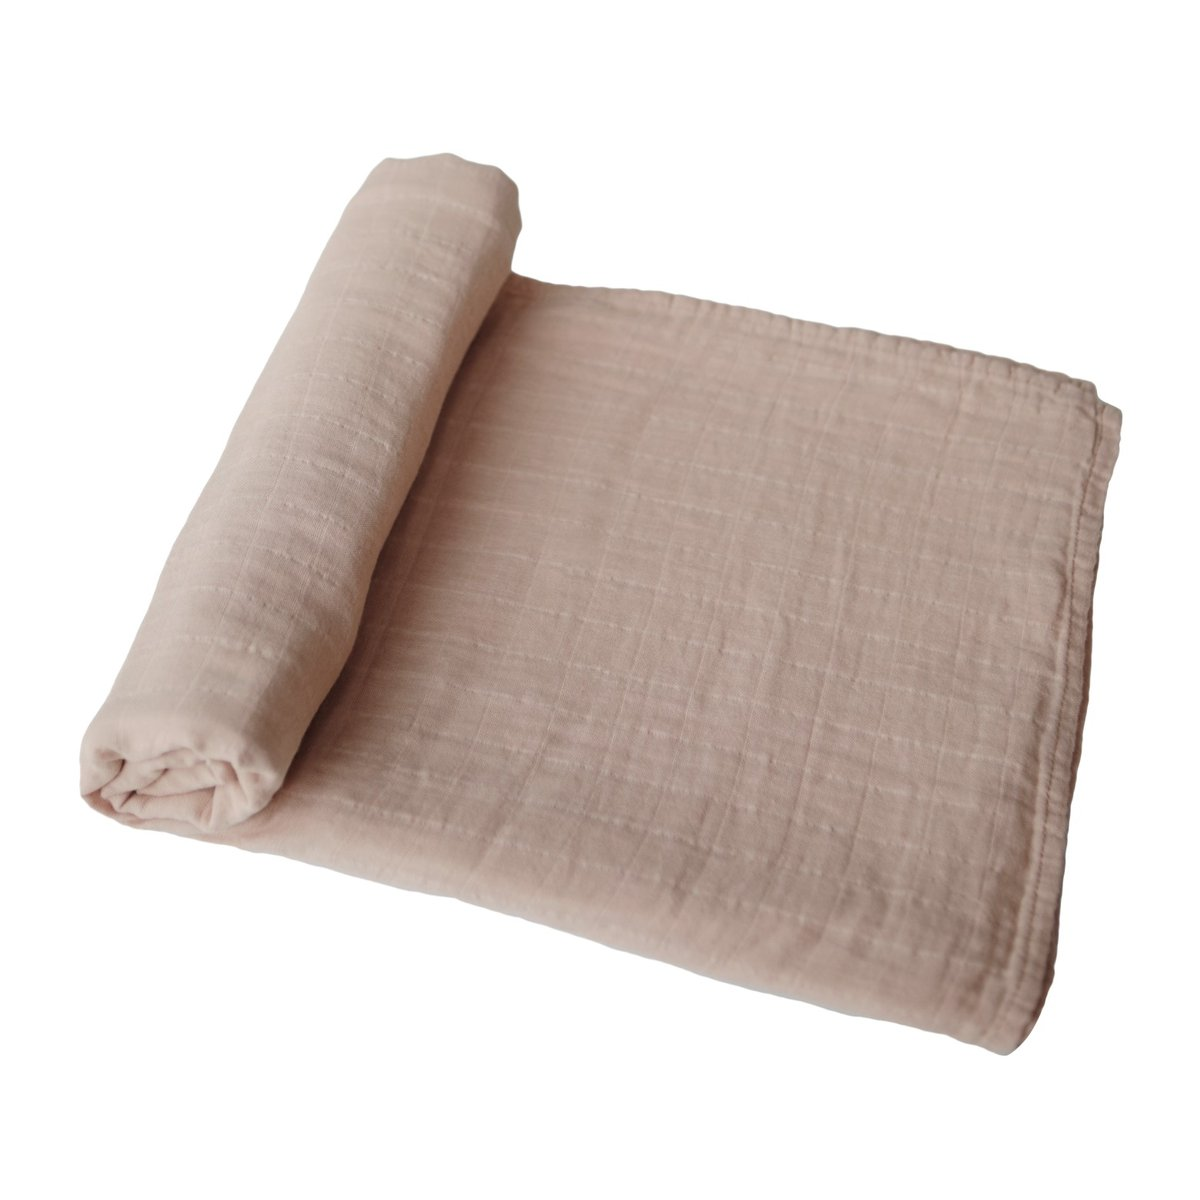 MUSHIE Muslin swaddle - Pale taupe -